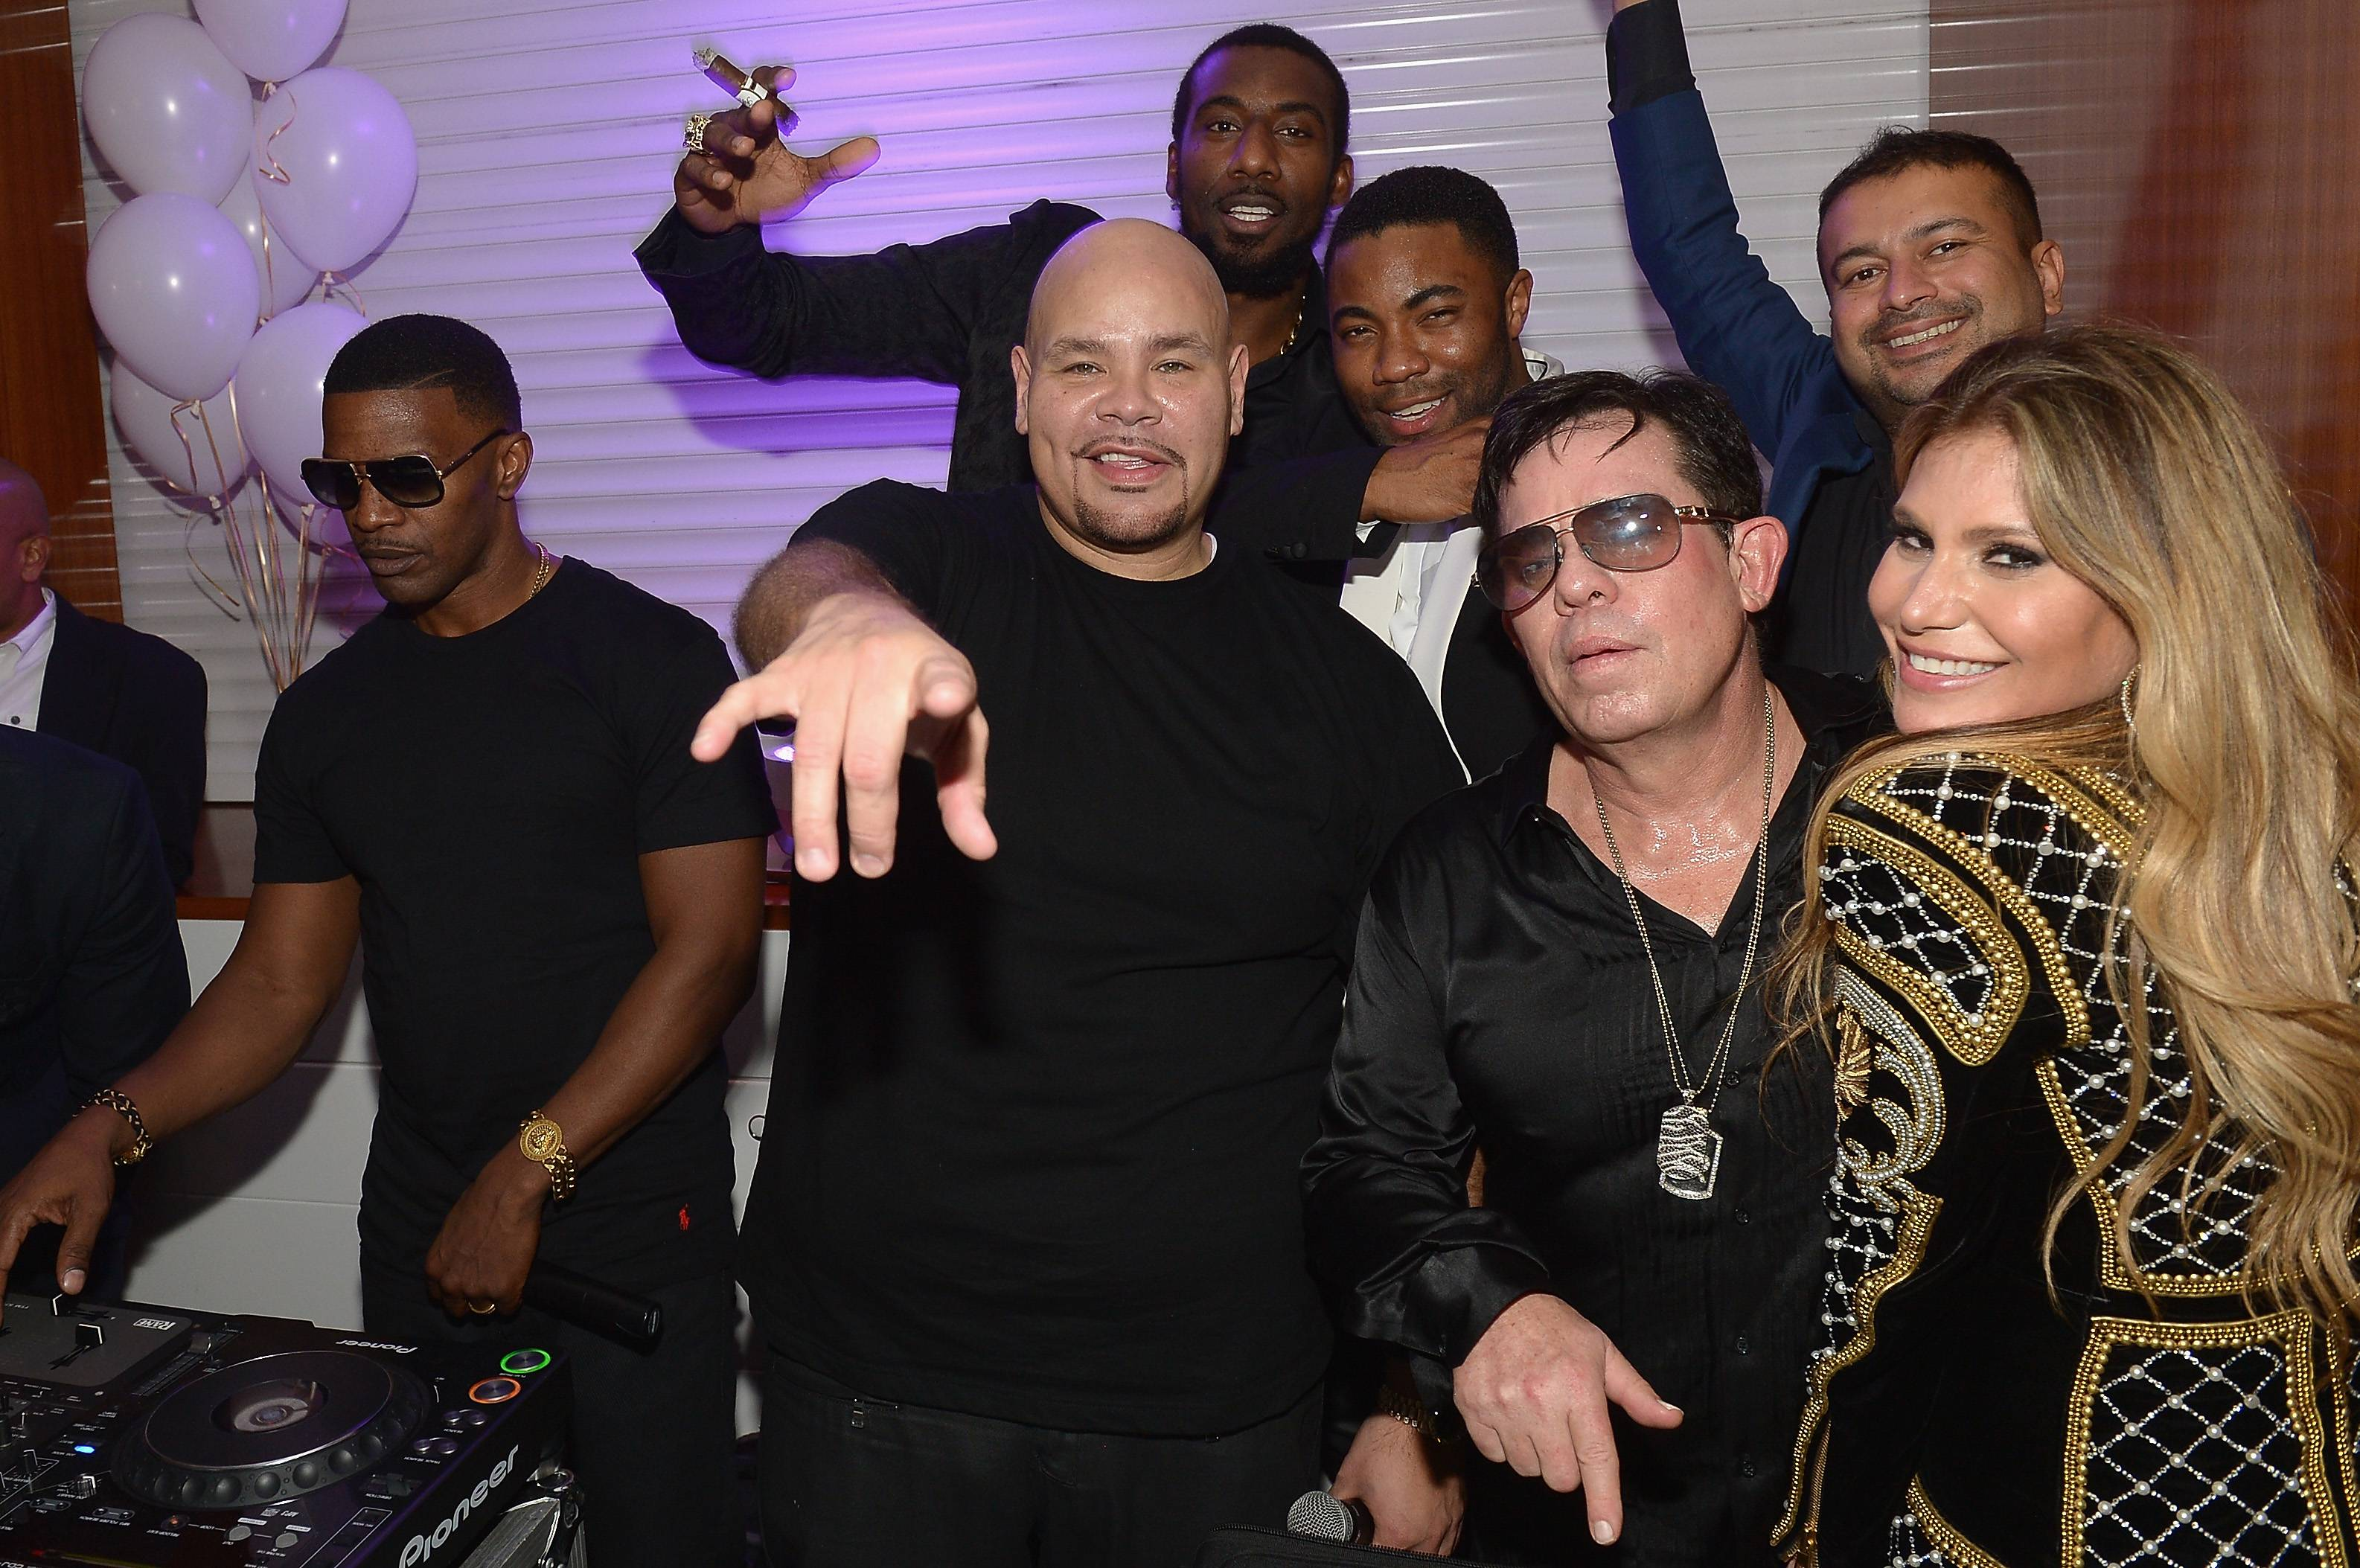 MIAMI, FL - NOVEMBER 21: Jamie Foxx, Amar'e Stoudemire, Fat Joe, JR Ridinger, Duane McLaughlin, Kamal Hotchandani, and Loren Ridinger attend Haute Living celebrates Loren Ridinger's birthday at Cipriani Downtown Miami on November 21, 2015 in Miami, Florida. (Photo by Gustavo Caballero/Getty Images for Haute Living)